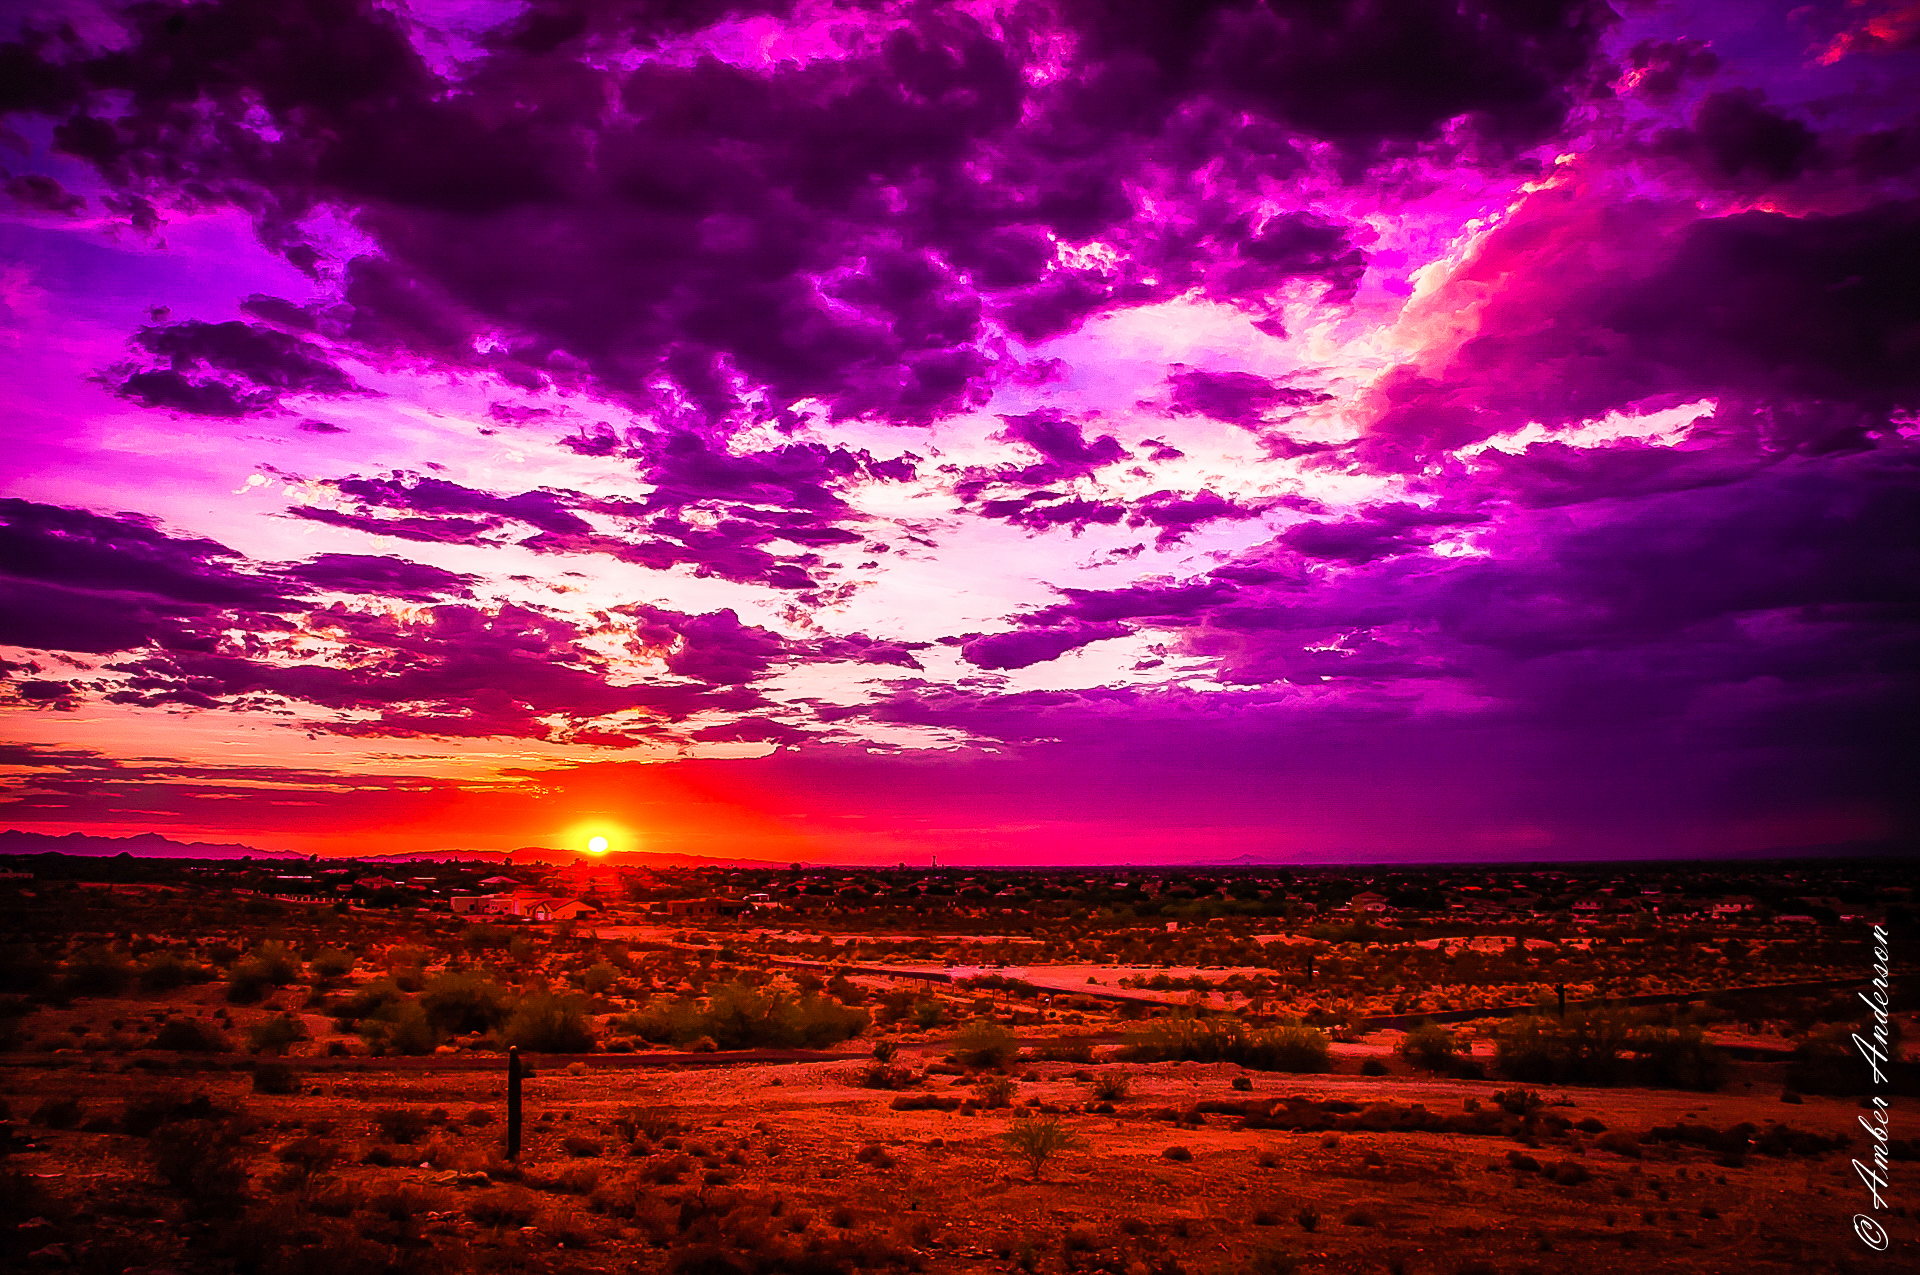 Monsoon Sunset in the Desert